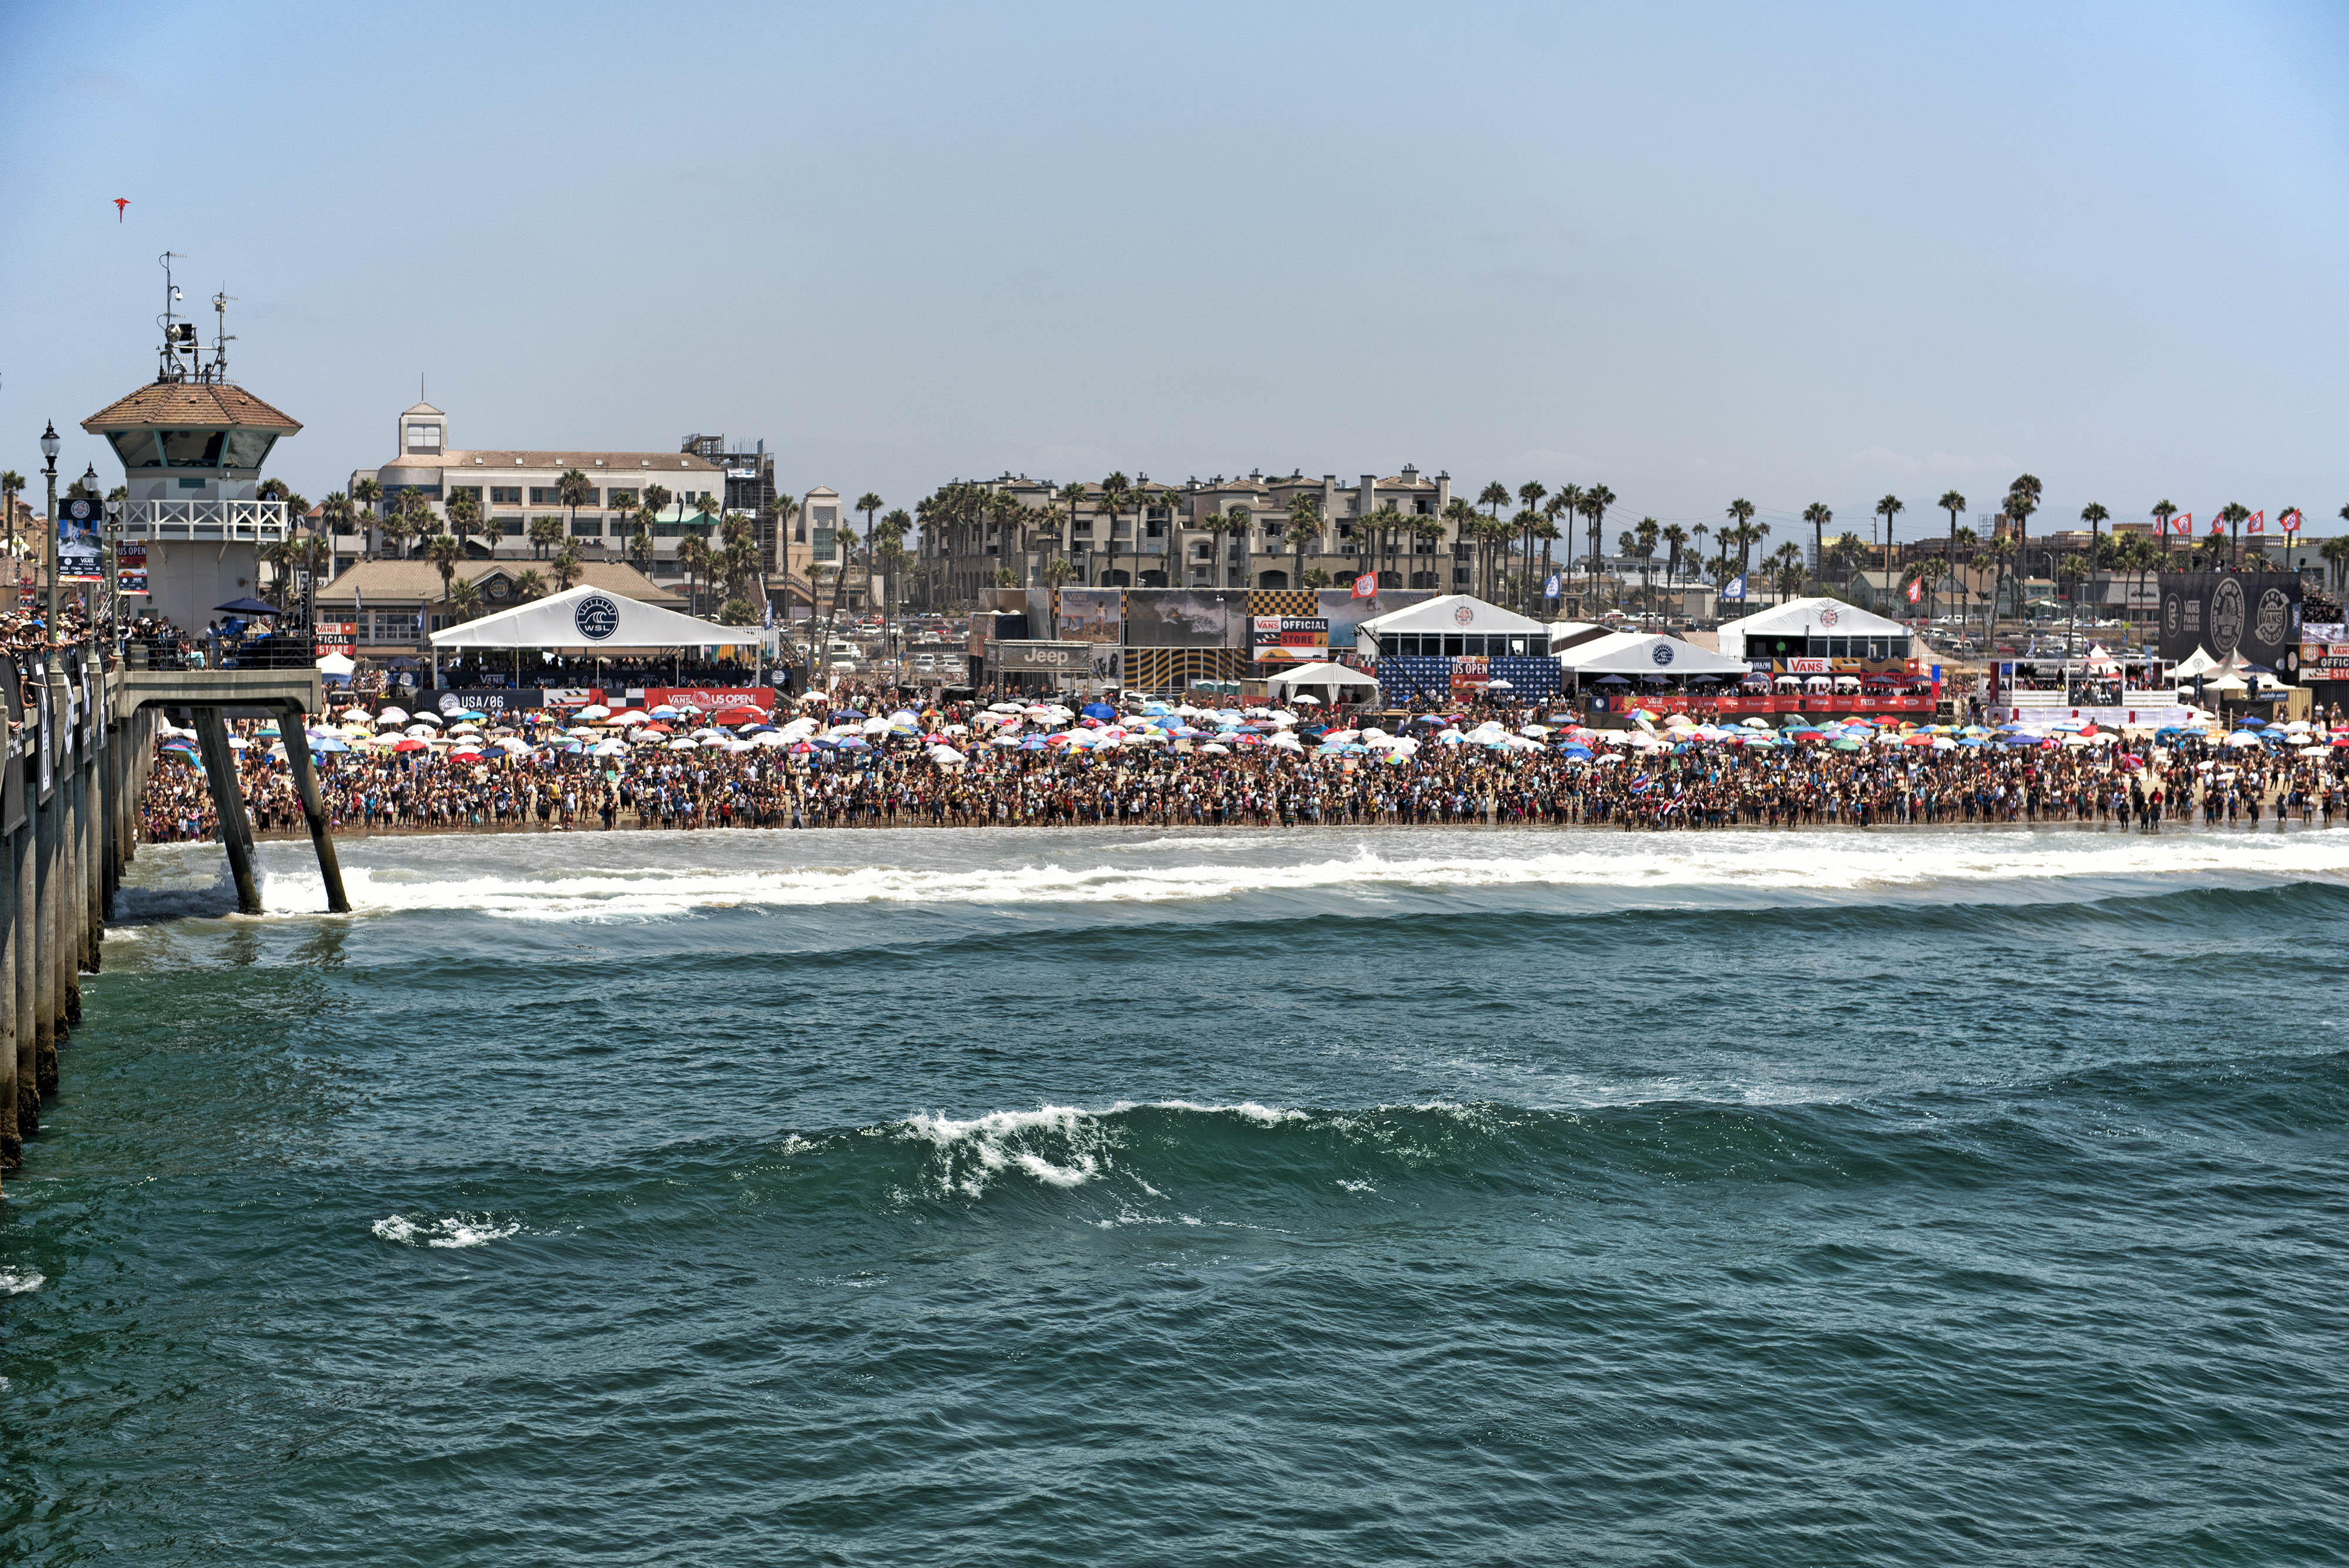 5e3cc15a5d Photo looking south to the beach from the Huntington Beach pier to the  crowds at the US Open of Surfing. As you can see